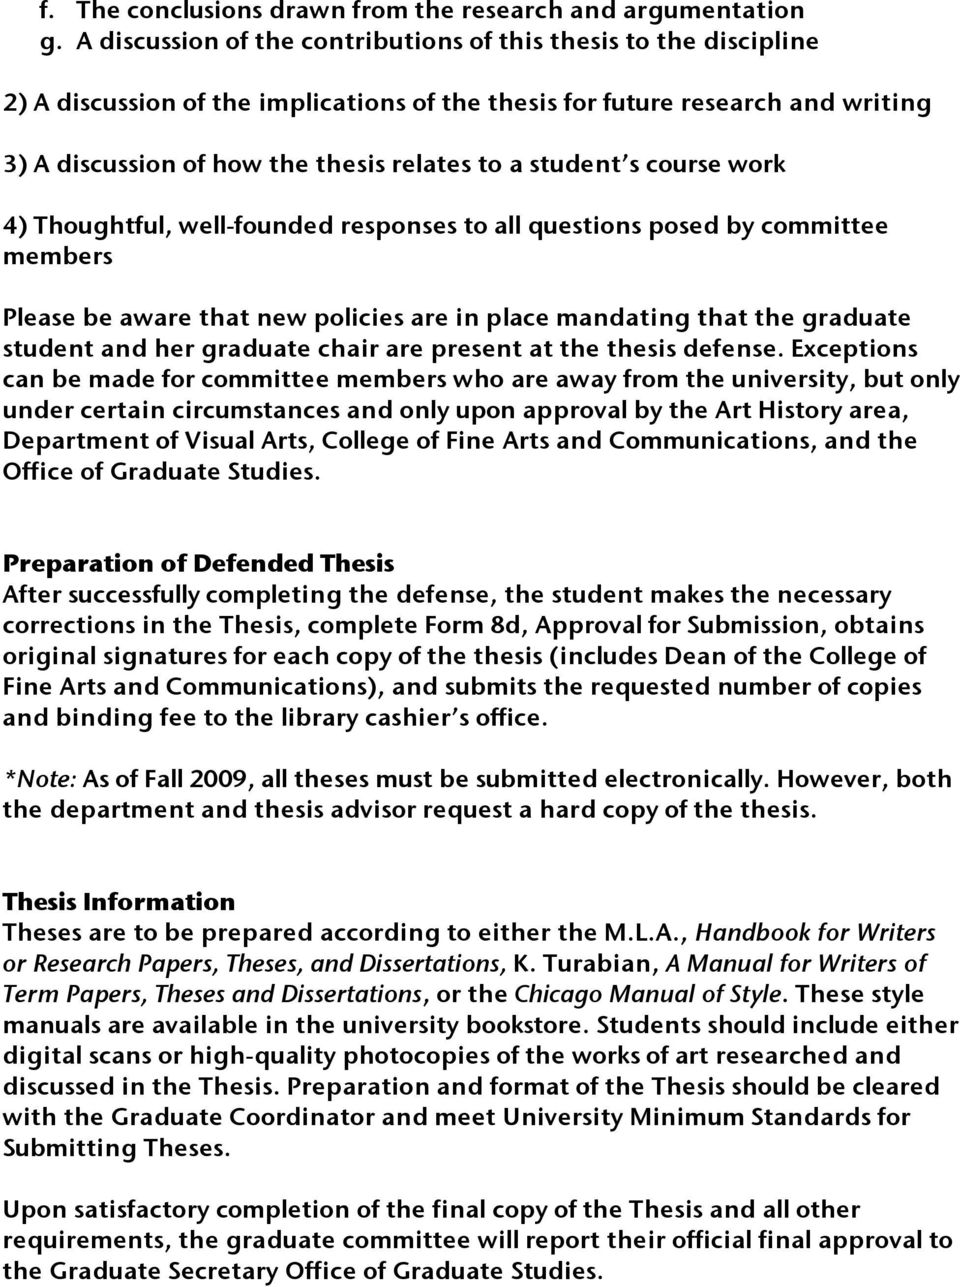 student s course work 4) Thoughtful, well-founded responses to all questions posed by committee members Please be aware that new policies are in place mandating that the graduate student and her